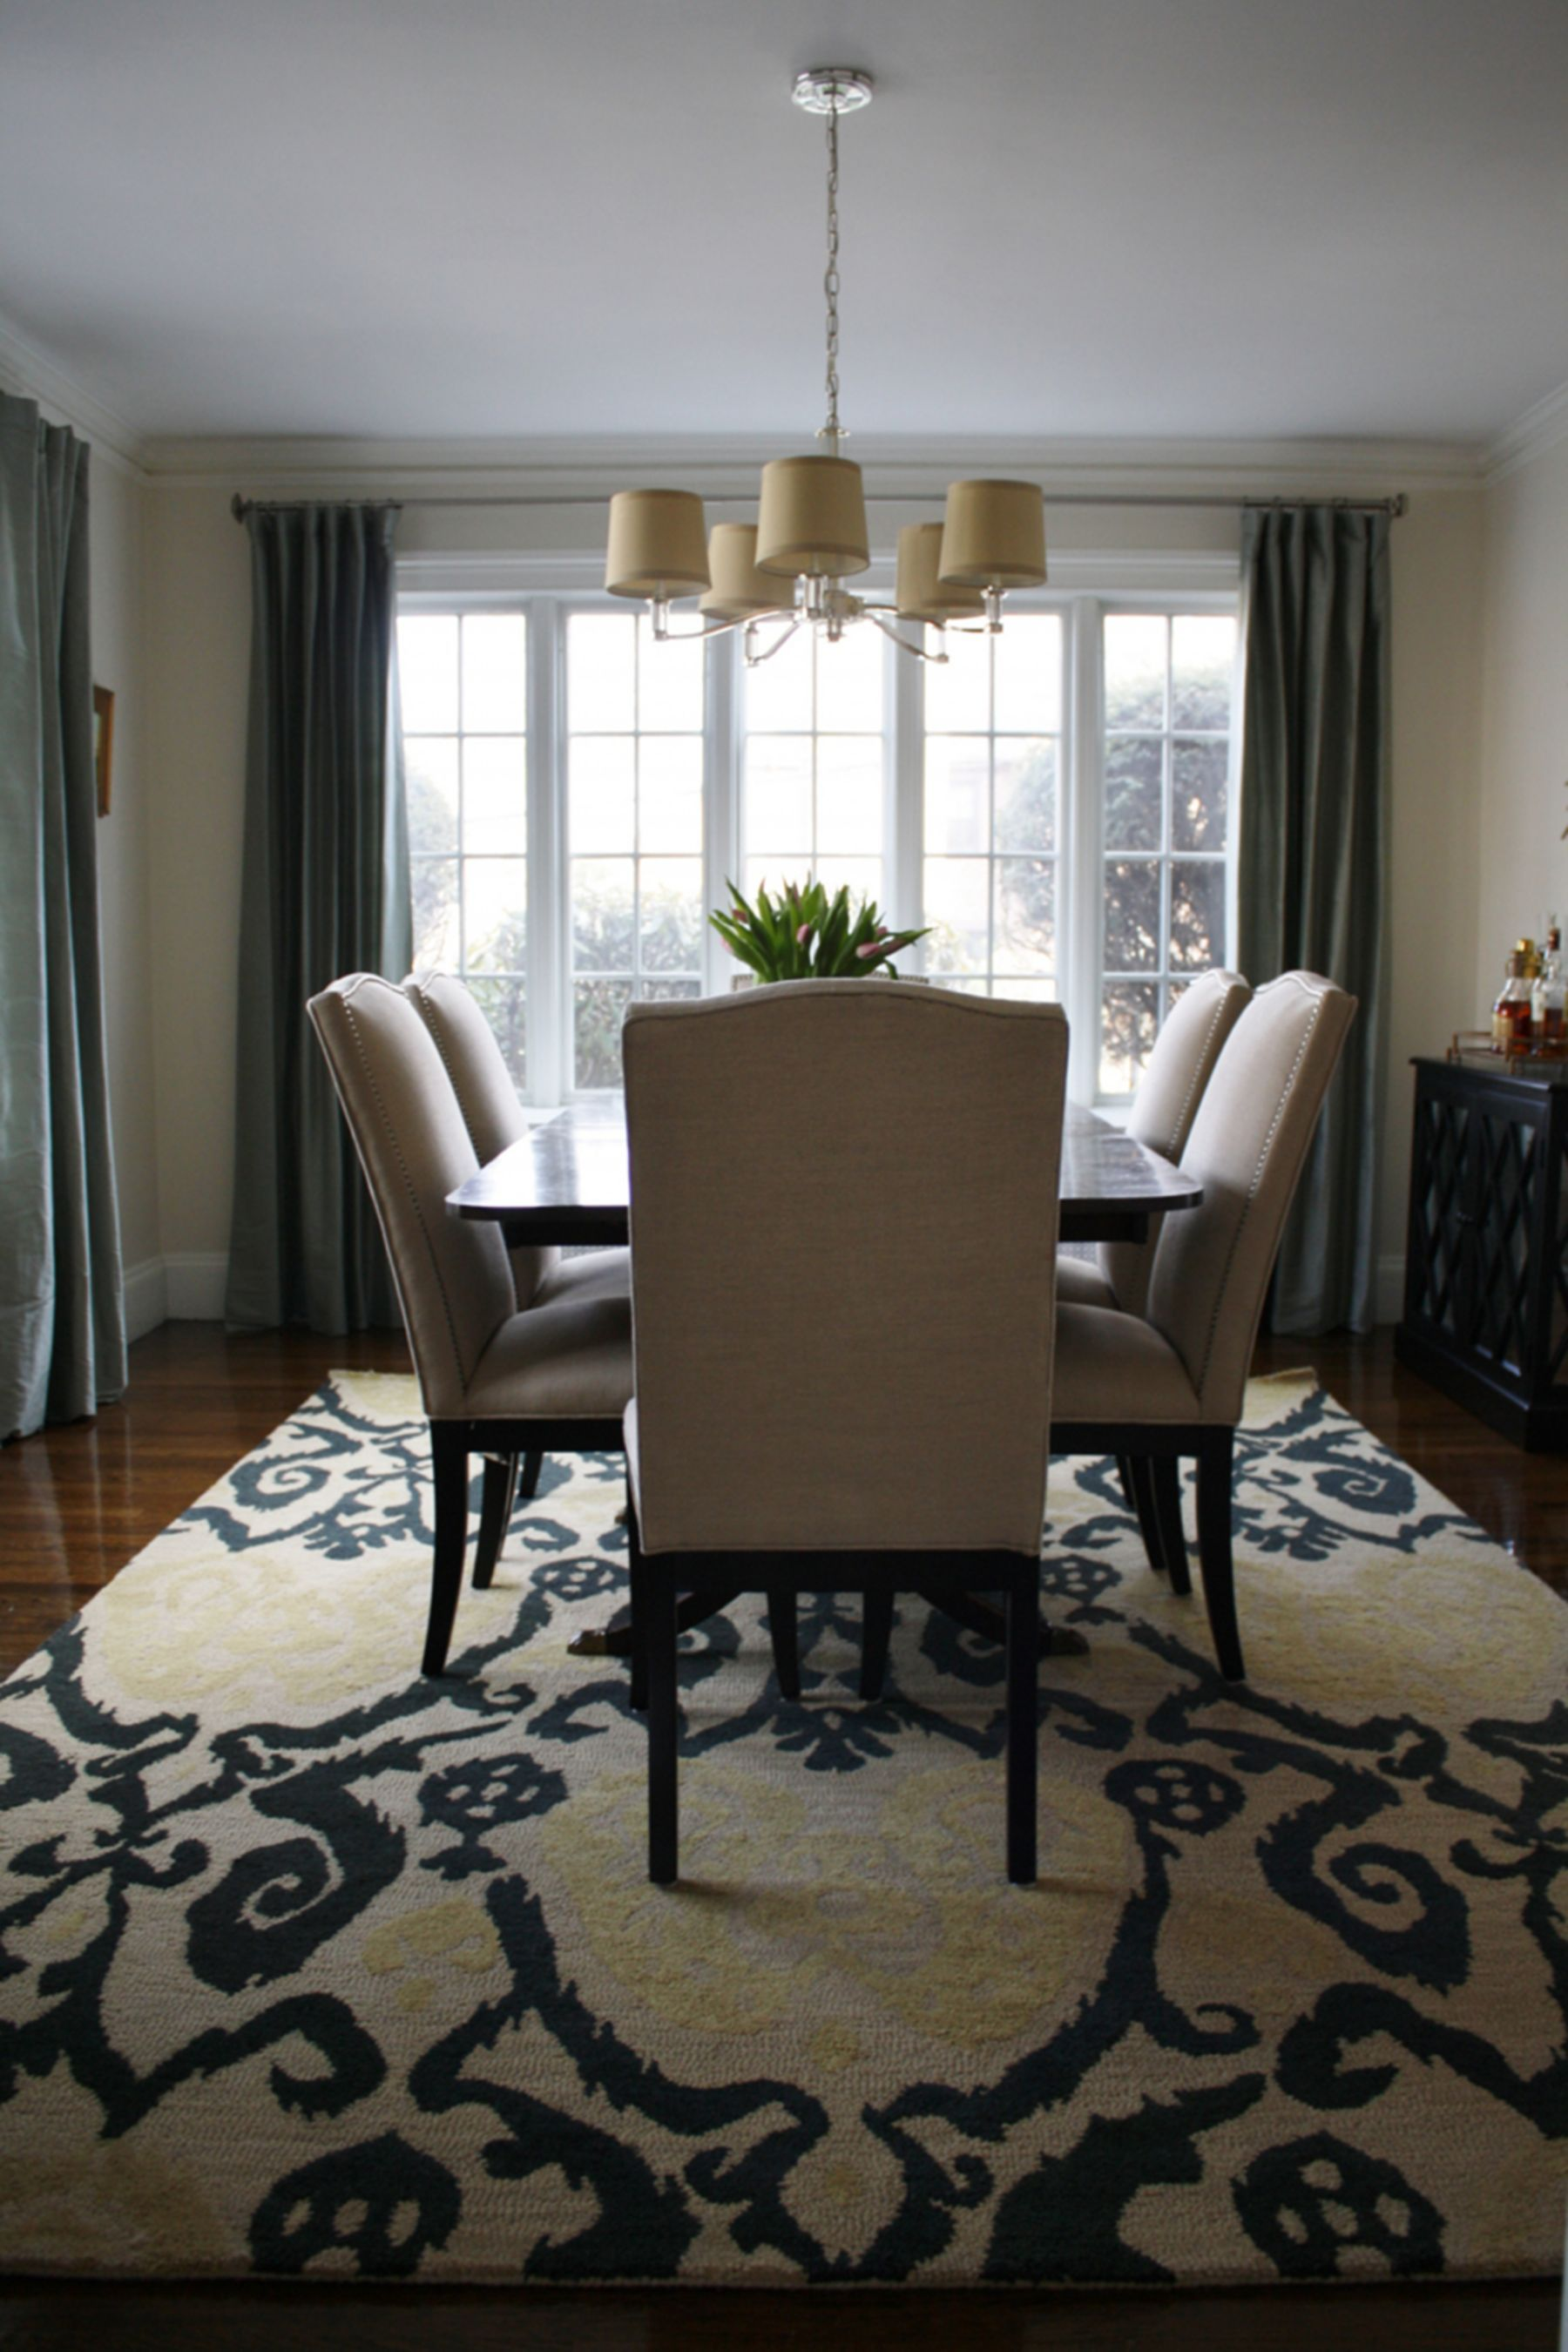 20 Top And Fantastic Modern Rugs Ideas That Will Make Your Dining Room Beautiful Area Rug Dining Room Dining Room Rug Carpet Dining Room